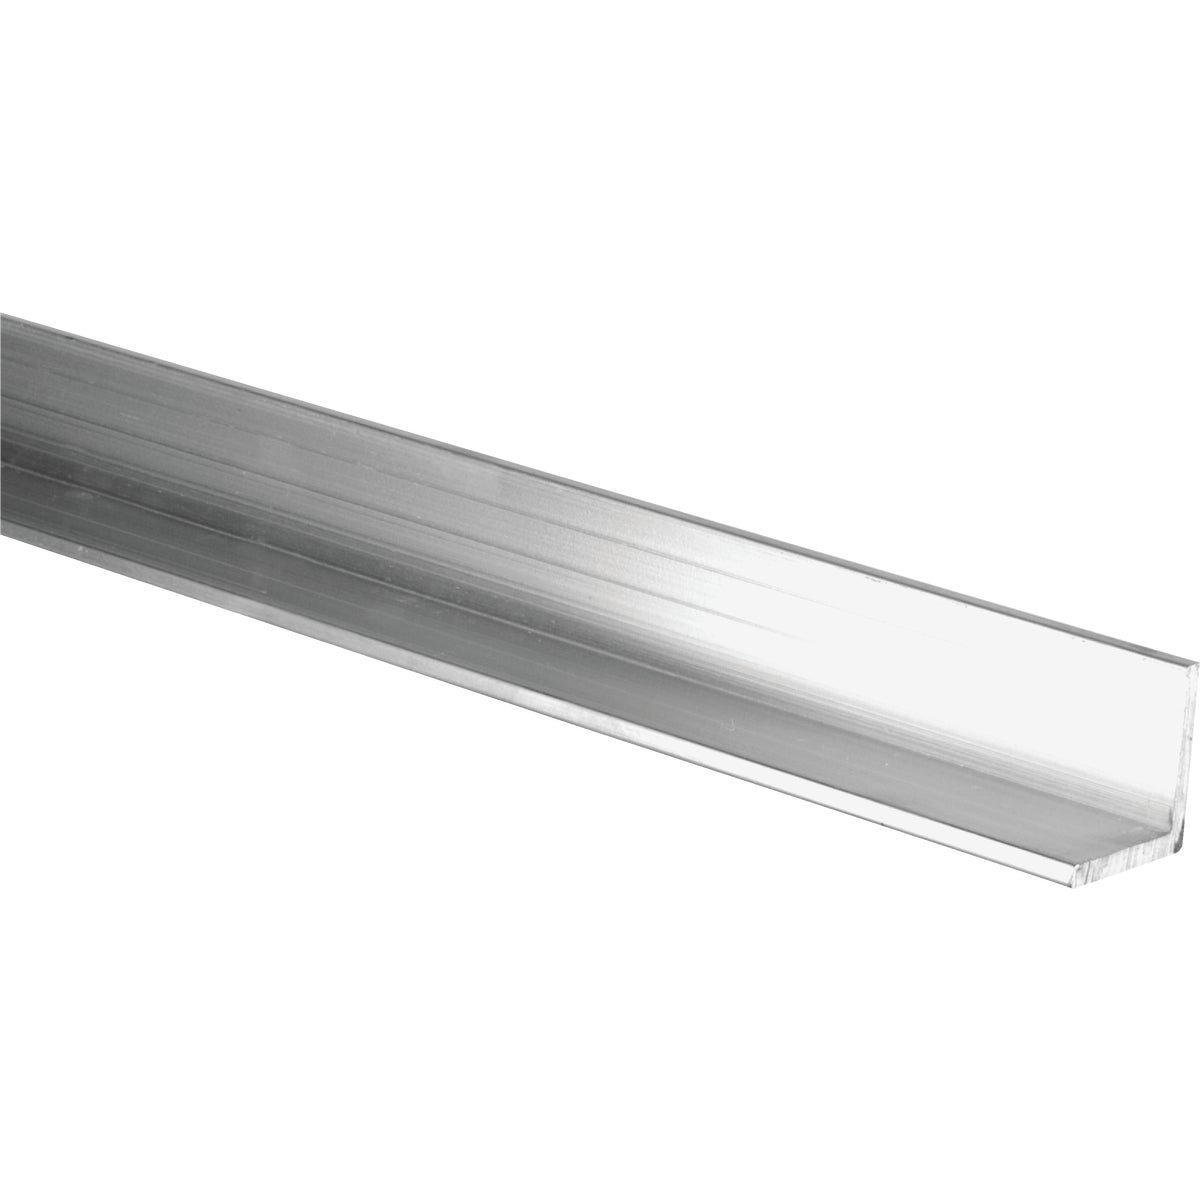 1-1/2X1/16X48 MILL ANGLE - N247353 by National Mfg Co